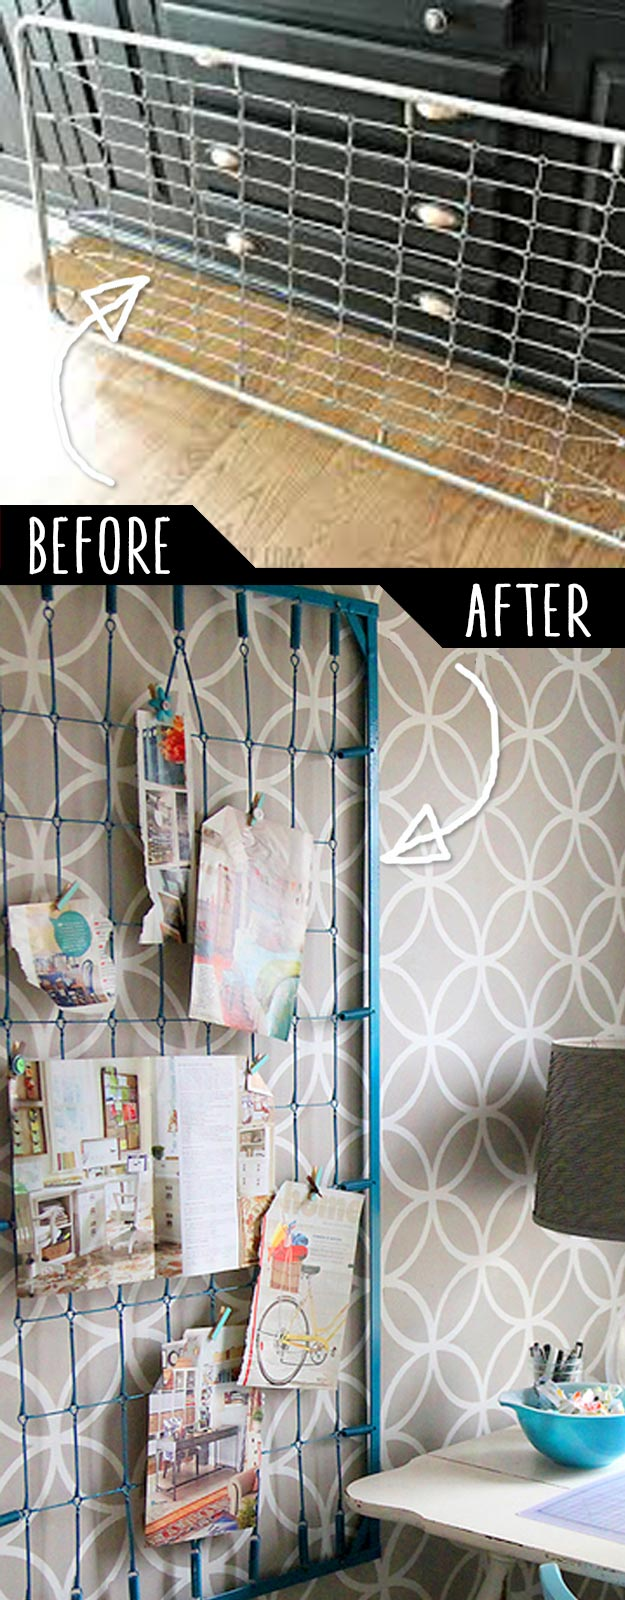 DIY Furniture Hacks | Old Crib Spring to Wall Memo Board | Cool Ideas for Creative Do It Yourself Furniture Made From Things You Might Not Expect  #diy